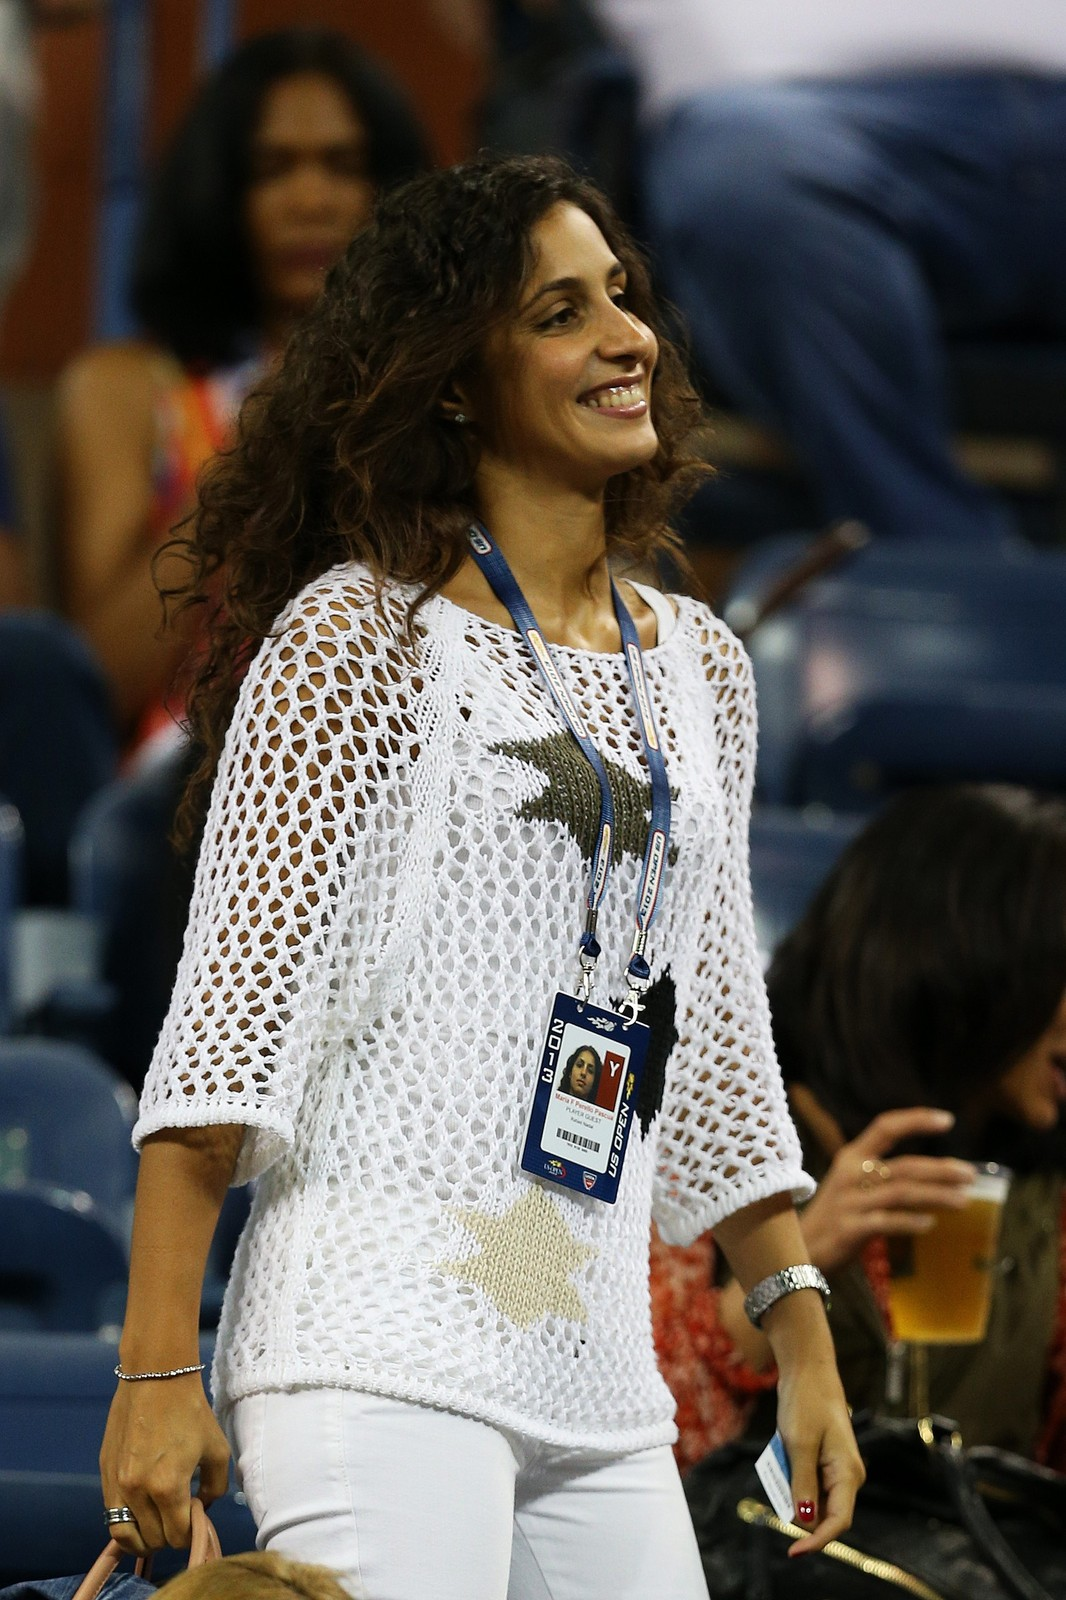 Maria Francisca Perello cheers on Rafael Nadal in New York ... Nadal Girlfriend 2013